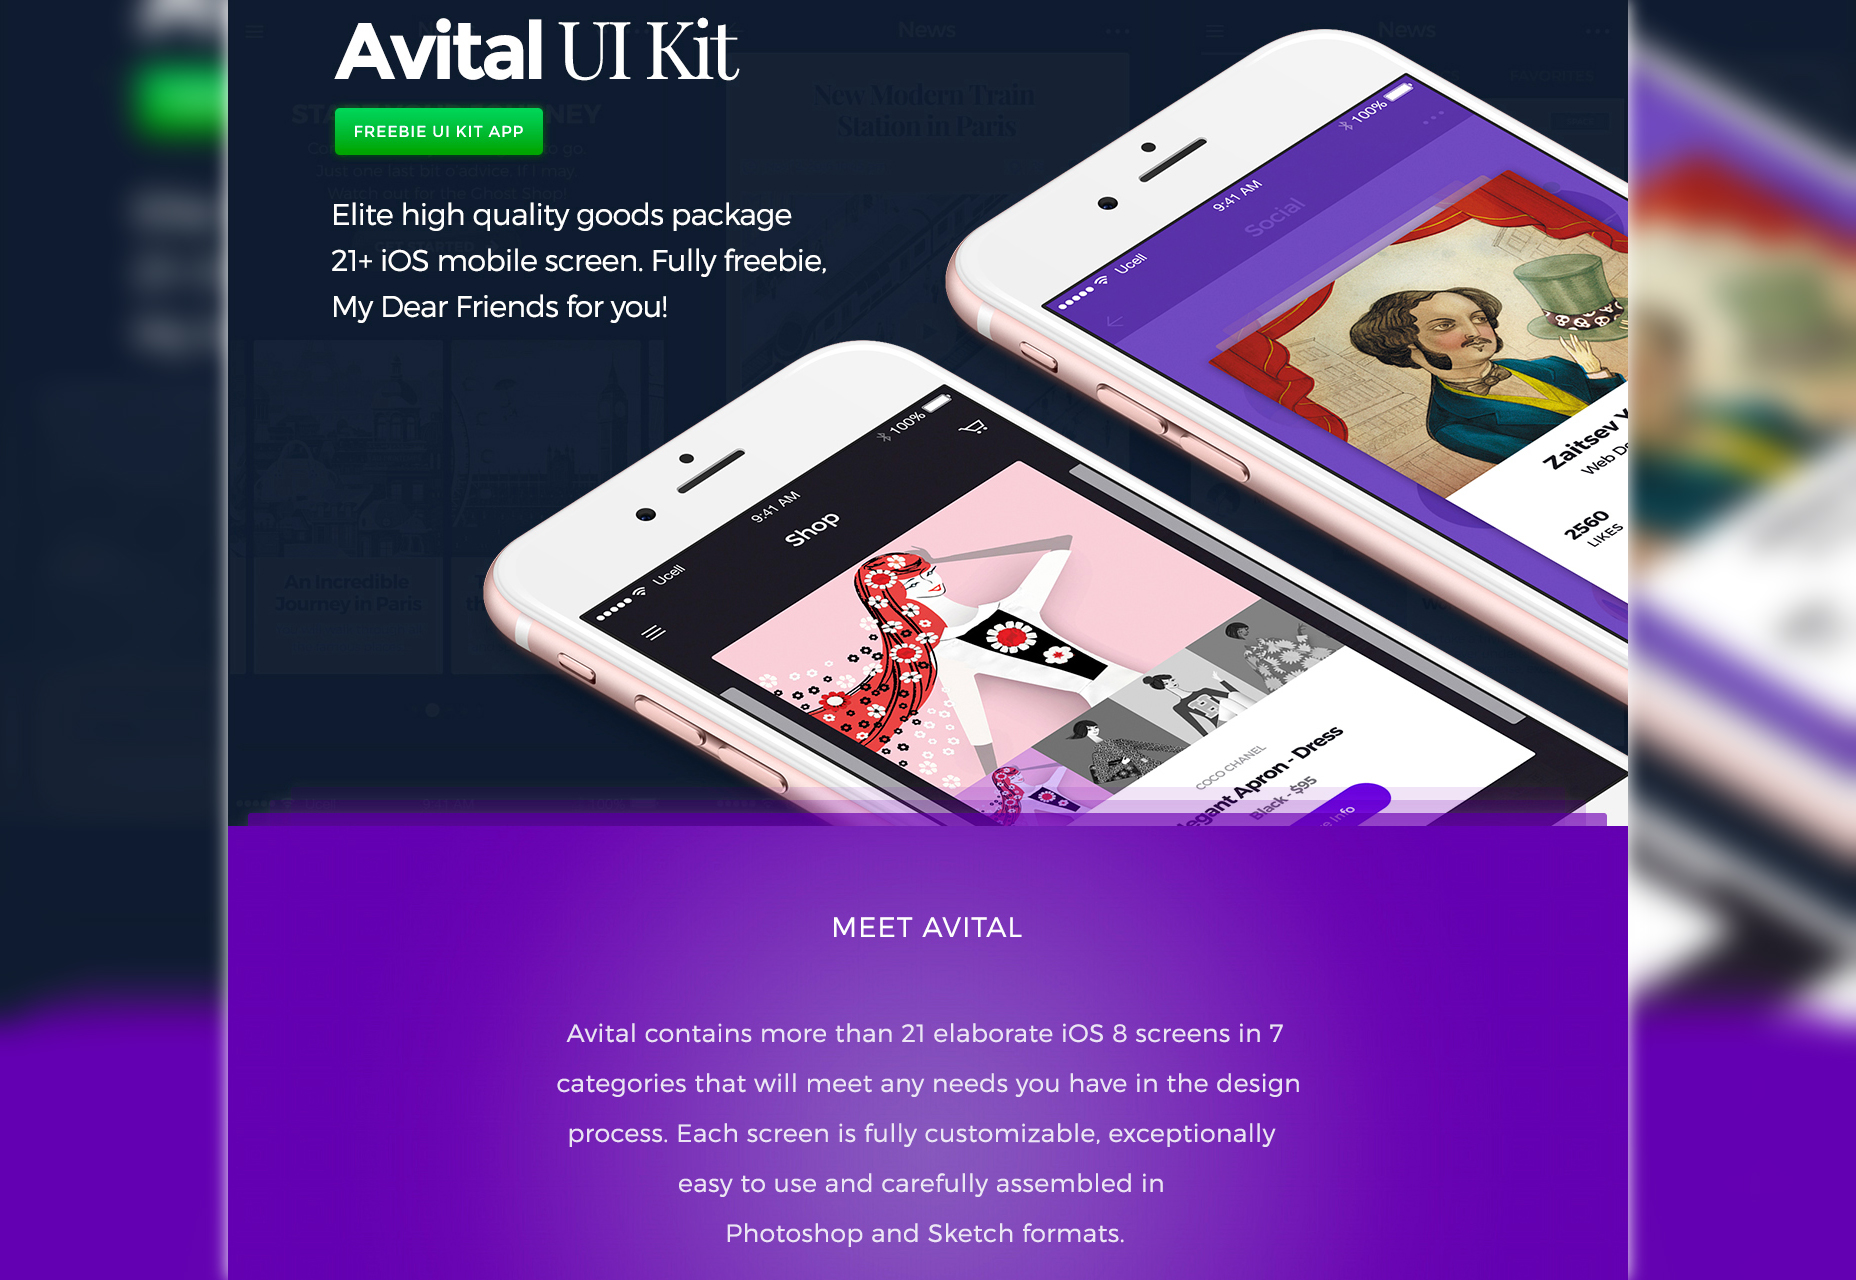 avital-elite-mobile-ios-ui-kit-